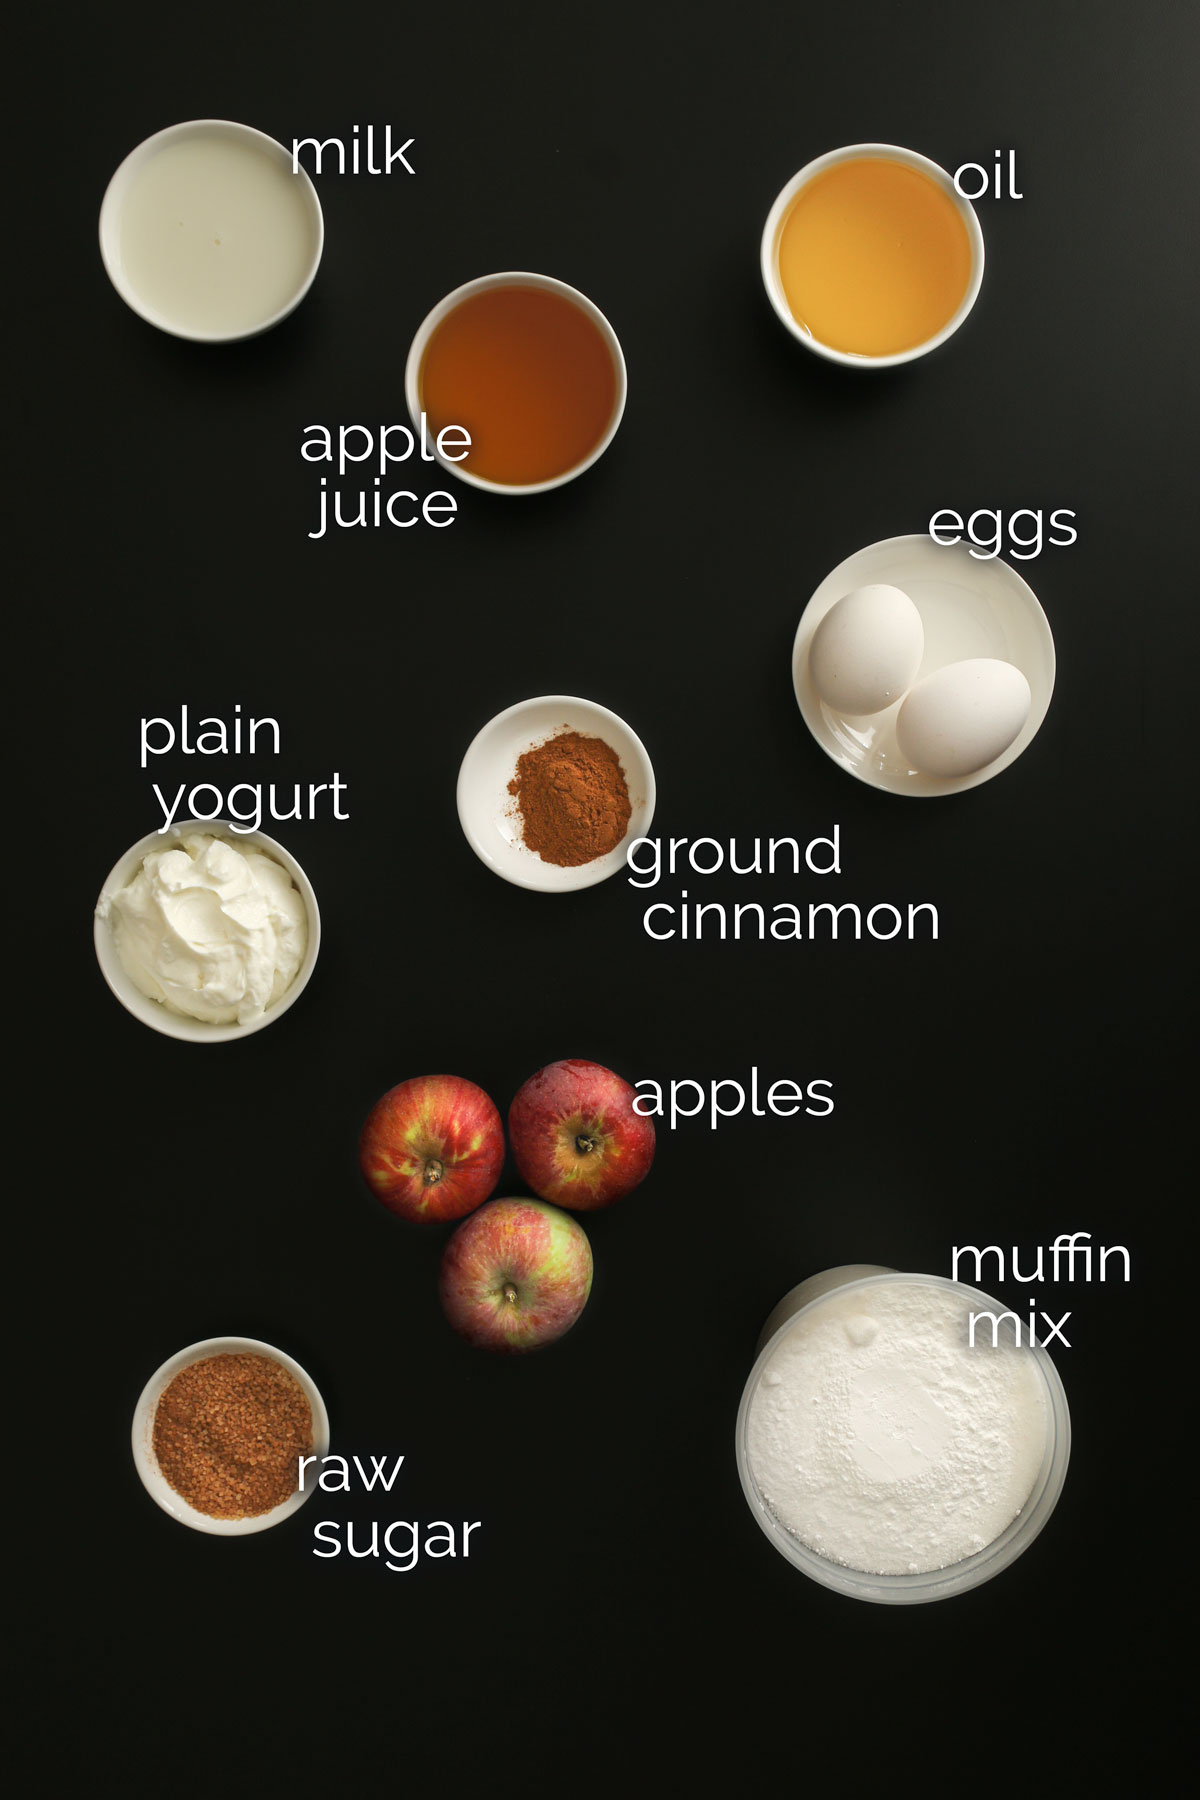 ingredients for apple cinnamon muffins measured out into small dishes and laid out on a black table top.